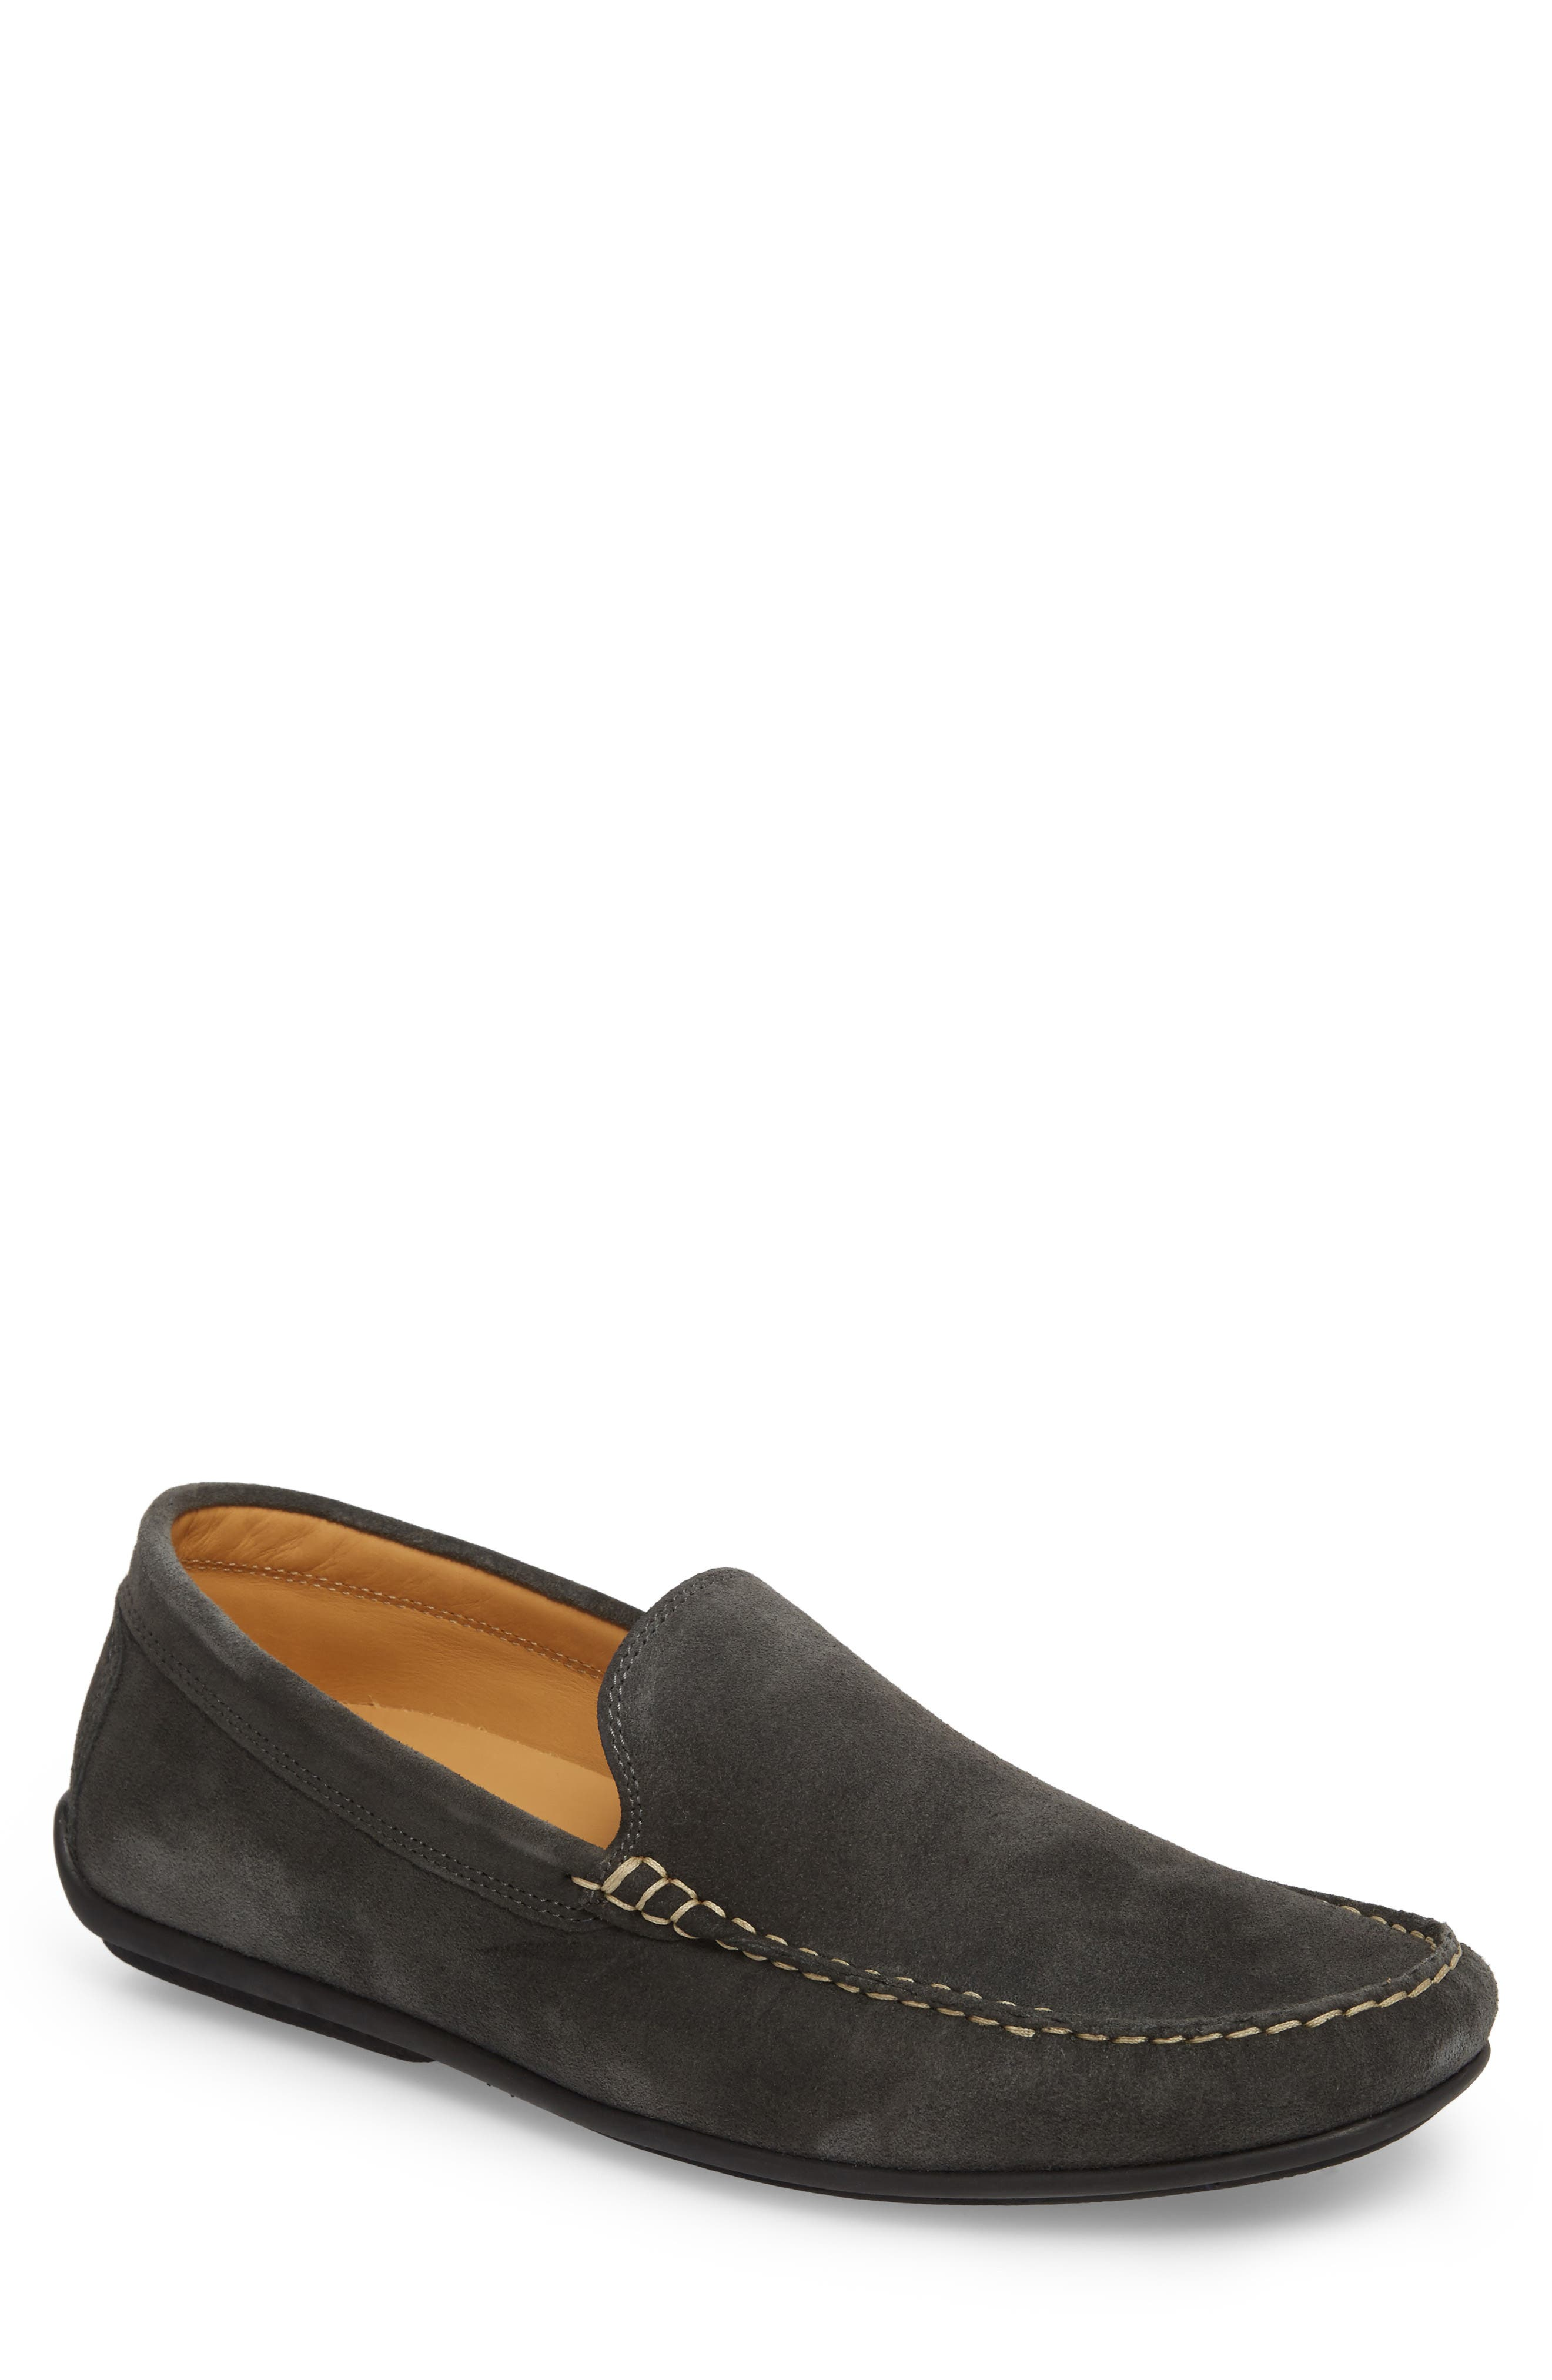 Greyhounds Loafer,                             Main thumbnail 1, color,                             GREY SUEDE